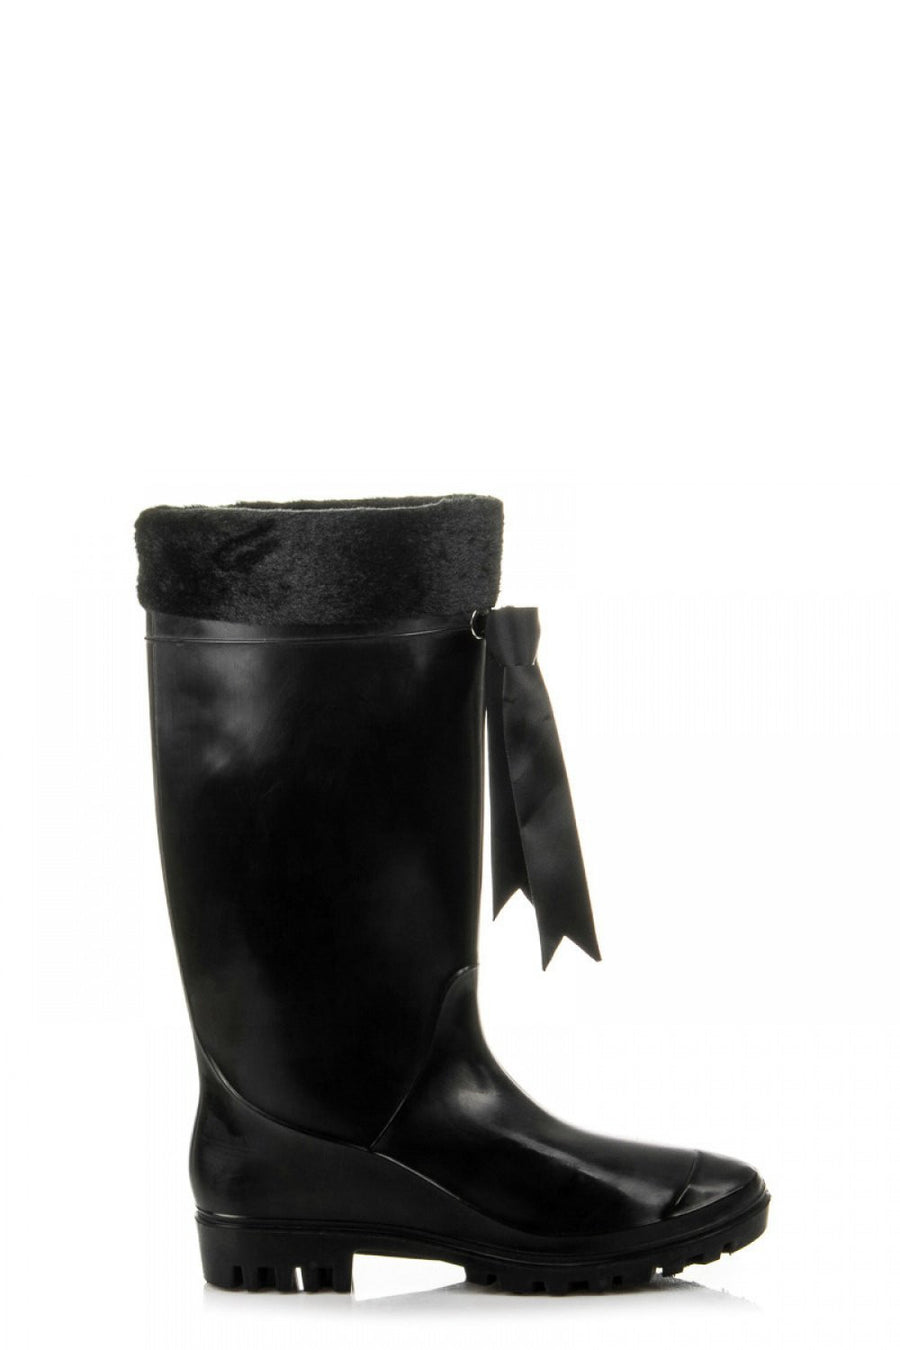 Wellingtons 66511 Zoki-Over the Knee High Boots, Thigh High Boots-Zoki-black-39-Très Fancy